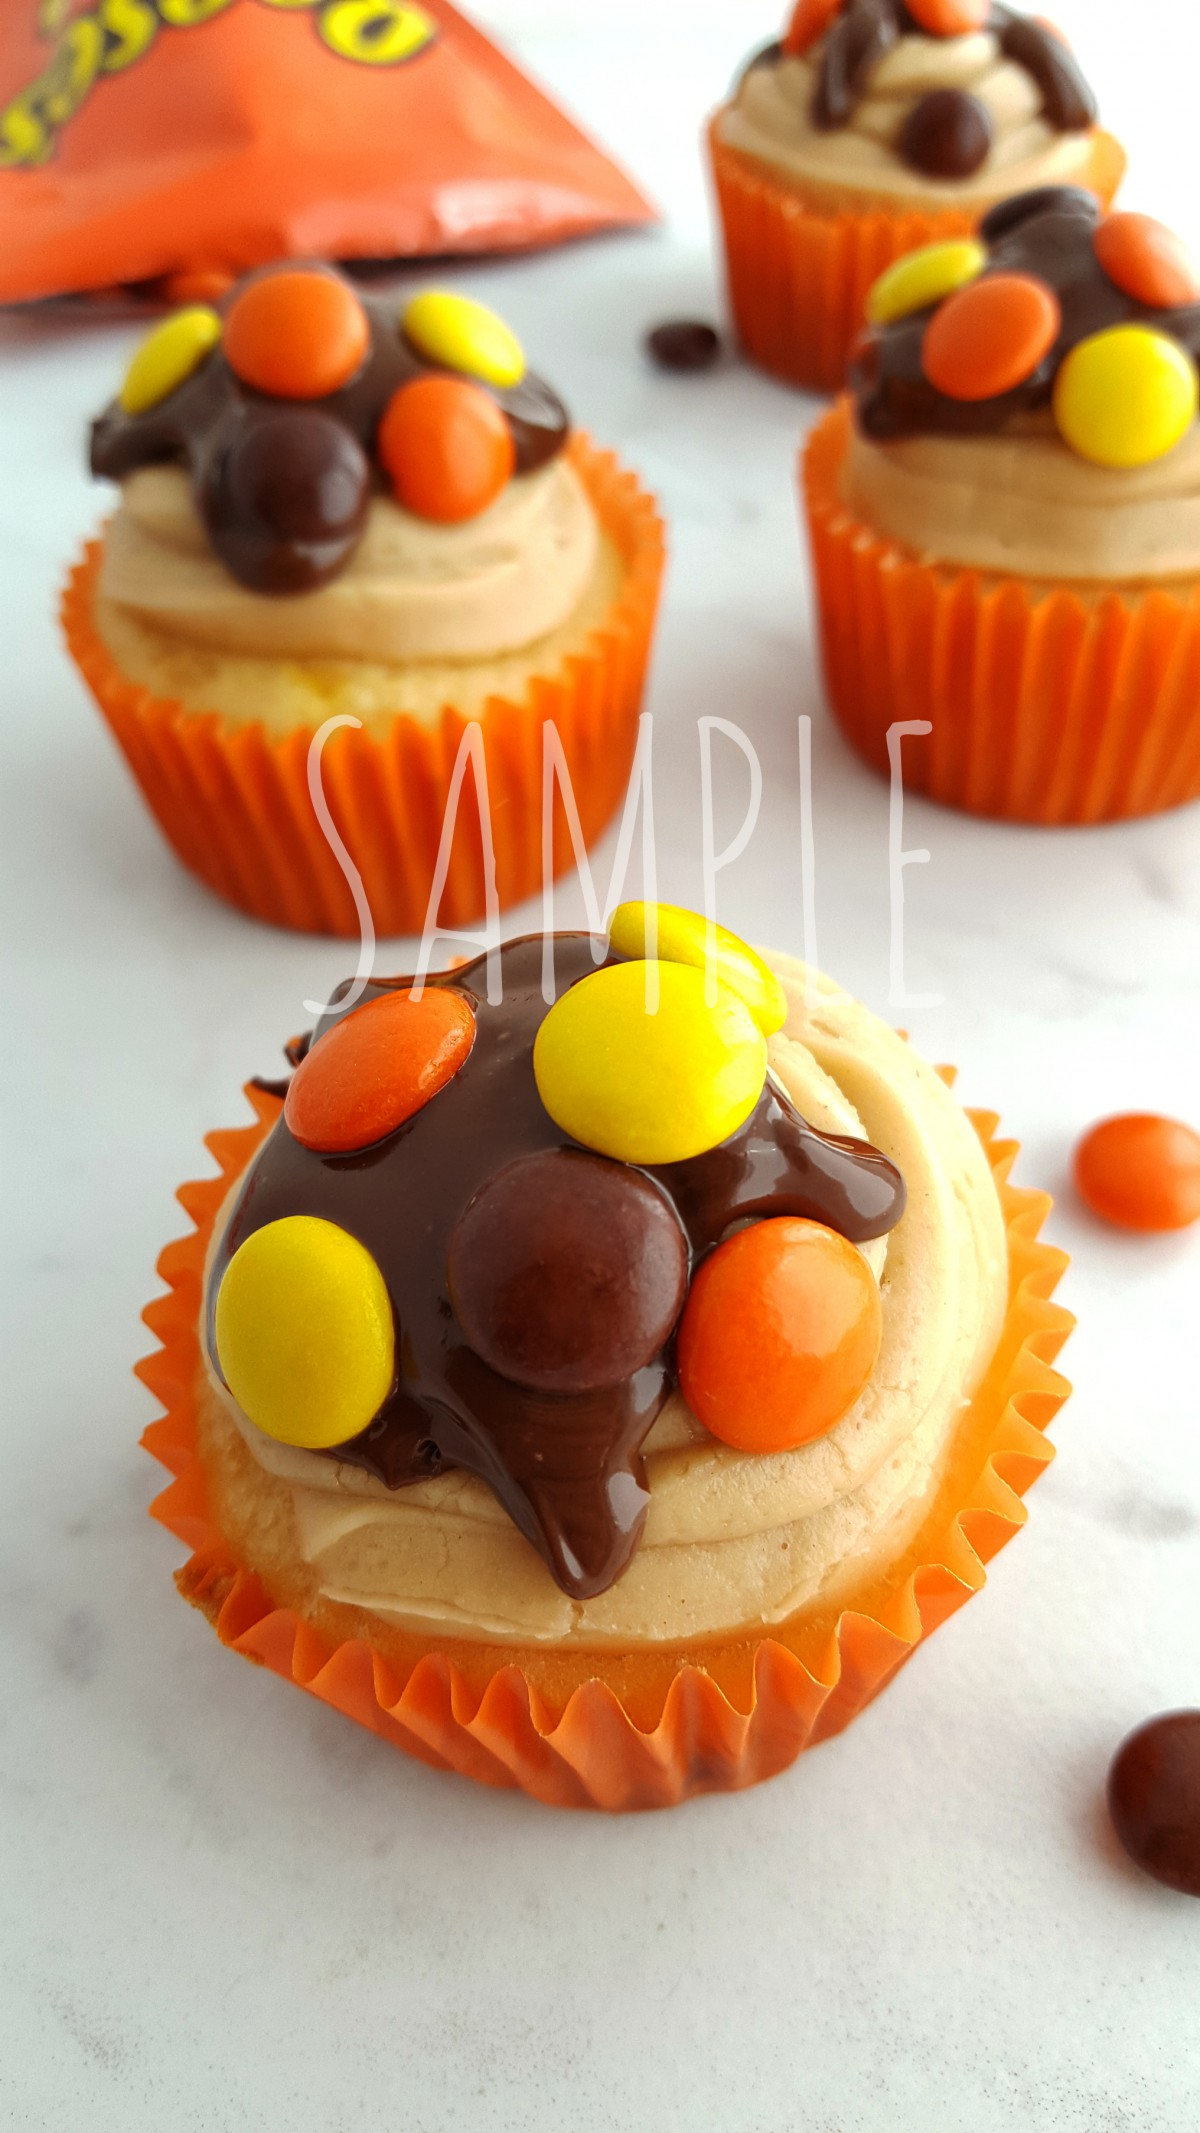 ReesesPiecesCupcakes_Sample1